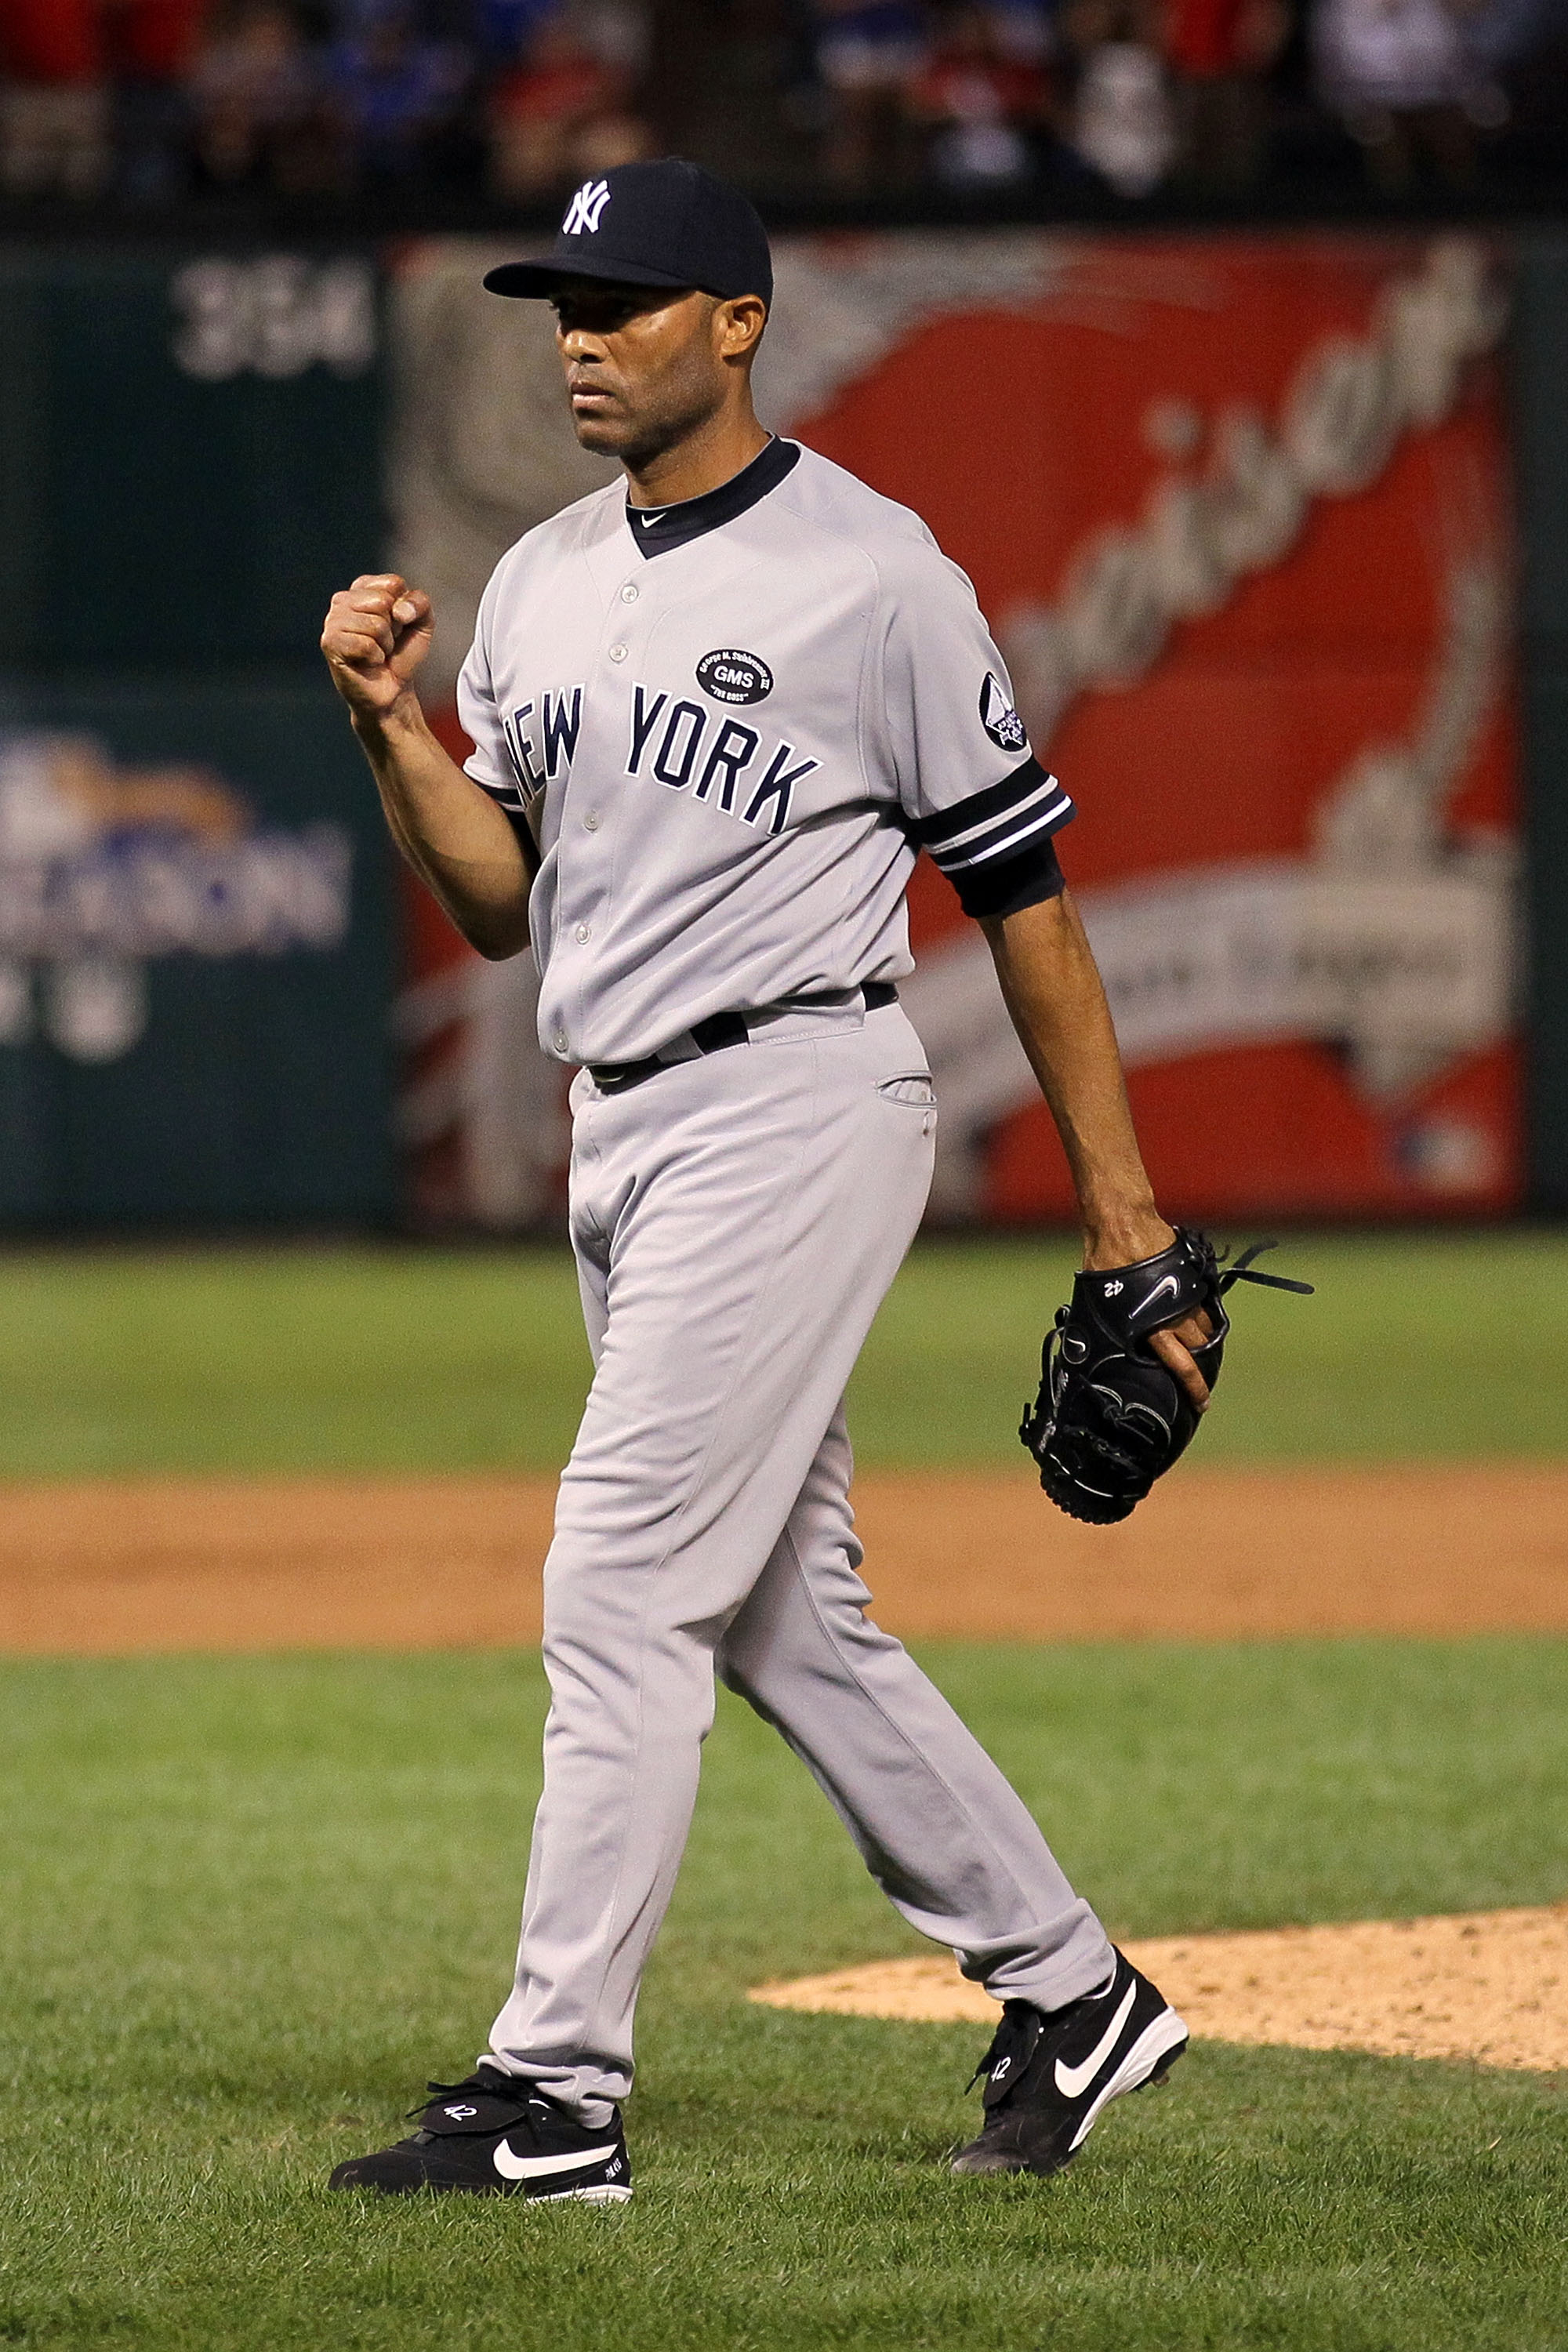 ARLINGTON, TX - OCTOBER 15:  Mariano Rivera #42 of the New York Yankees celebrates after defeating the Texas Rangers by a score of 6-5 to win Game One of the ALCS during the 2010 MLB Playoffs at Rangers Ballpark in Arlington on October 15, 2010 in Arlingt